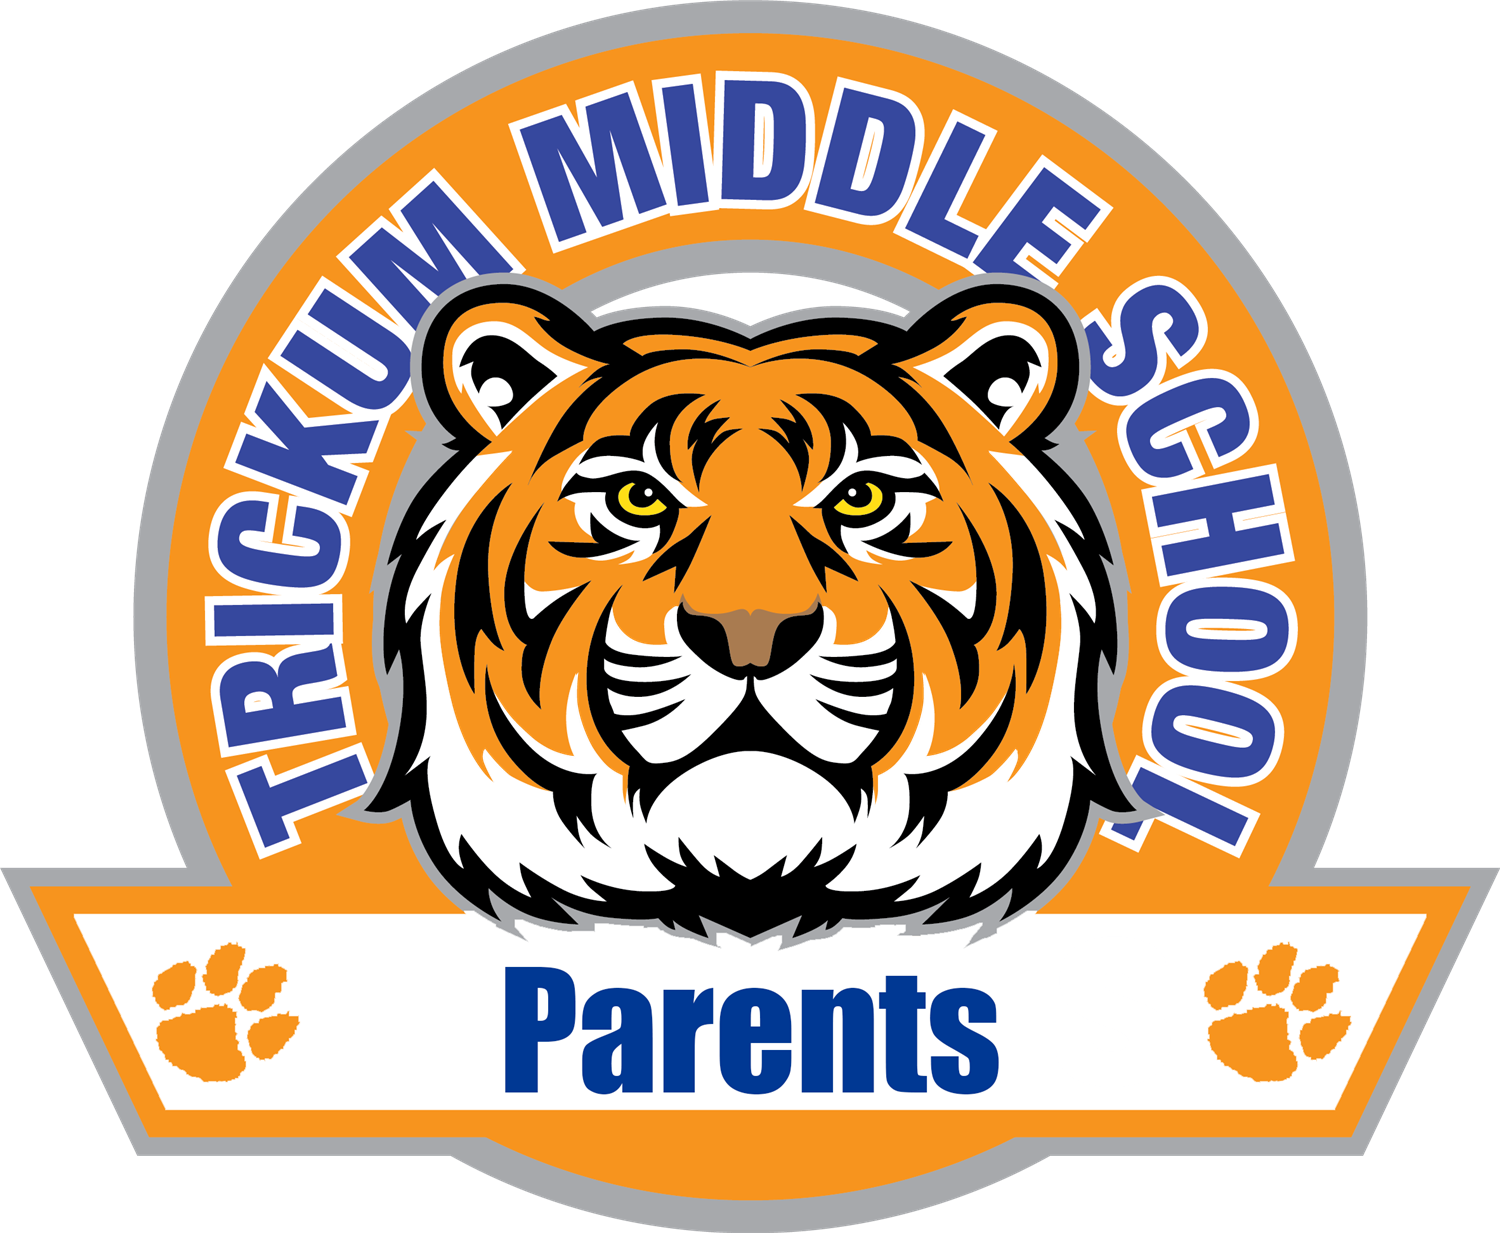 For Parents Logo